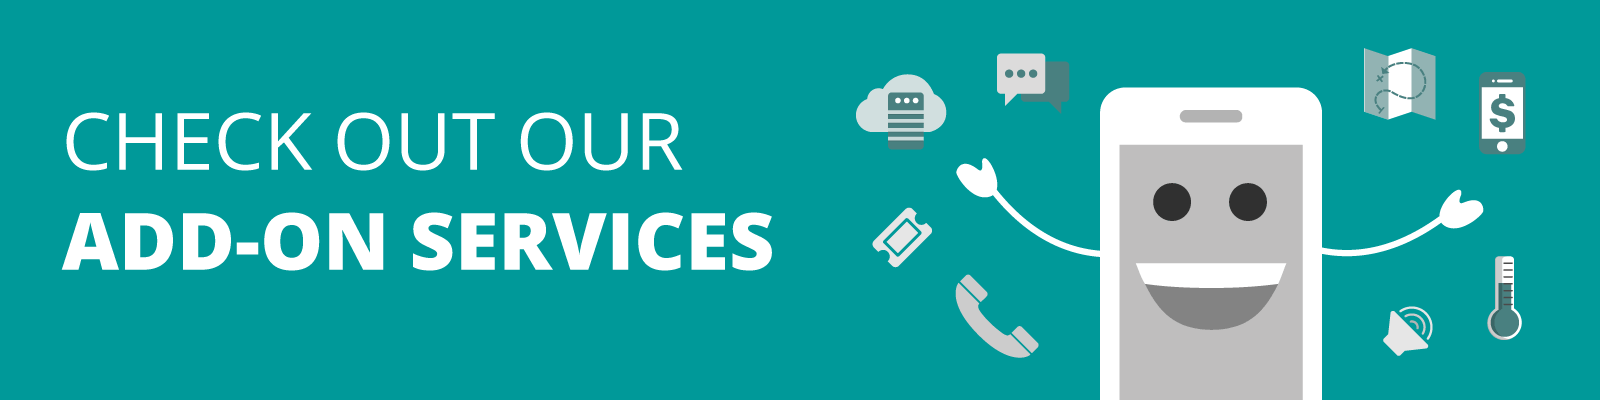 Suite of Services Banner